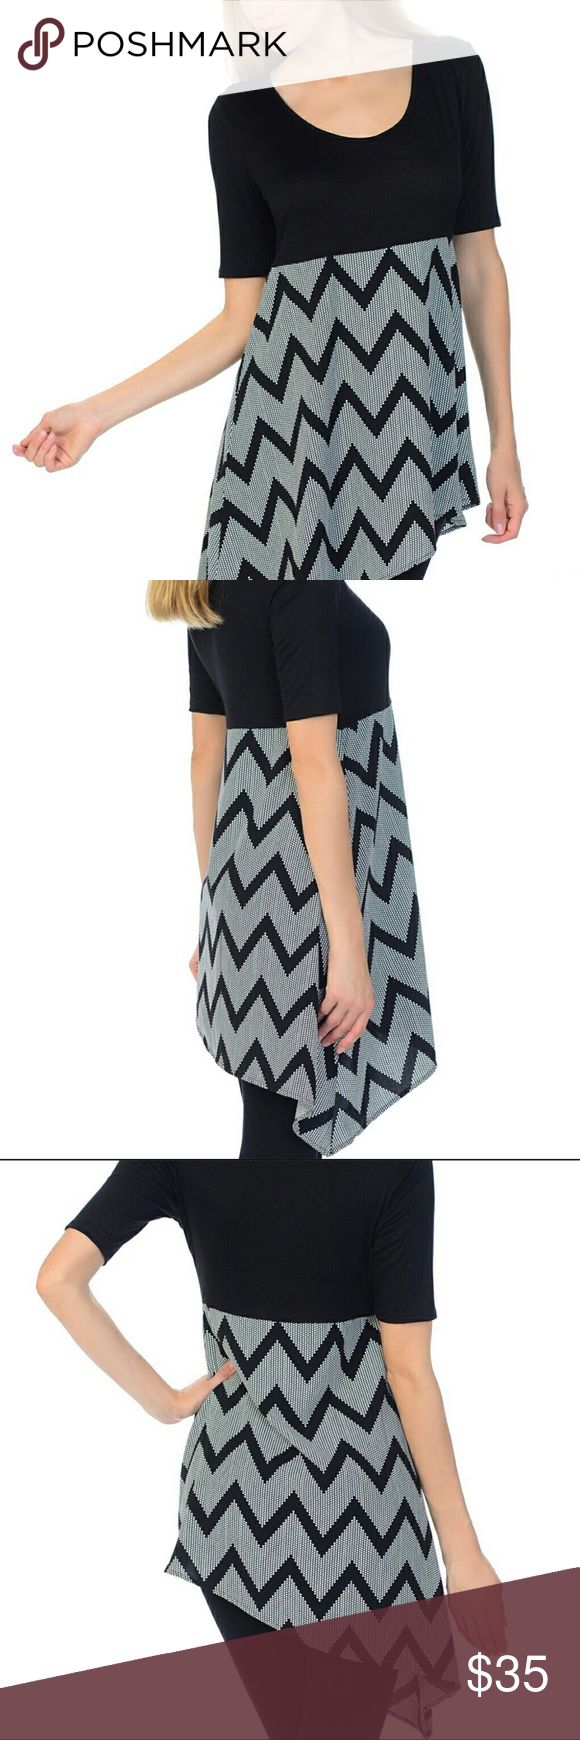 "JUST ARRIVED! Plus Size Chevron Assymetrical Tunic Plus size assymetrical tunic. Self: 97% rayon, 3% spandex, count: 100% polyester. Made in the USA. 28.5"" long. New. Bellino Clothing Tops Tunics"